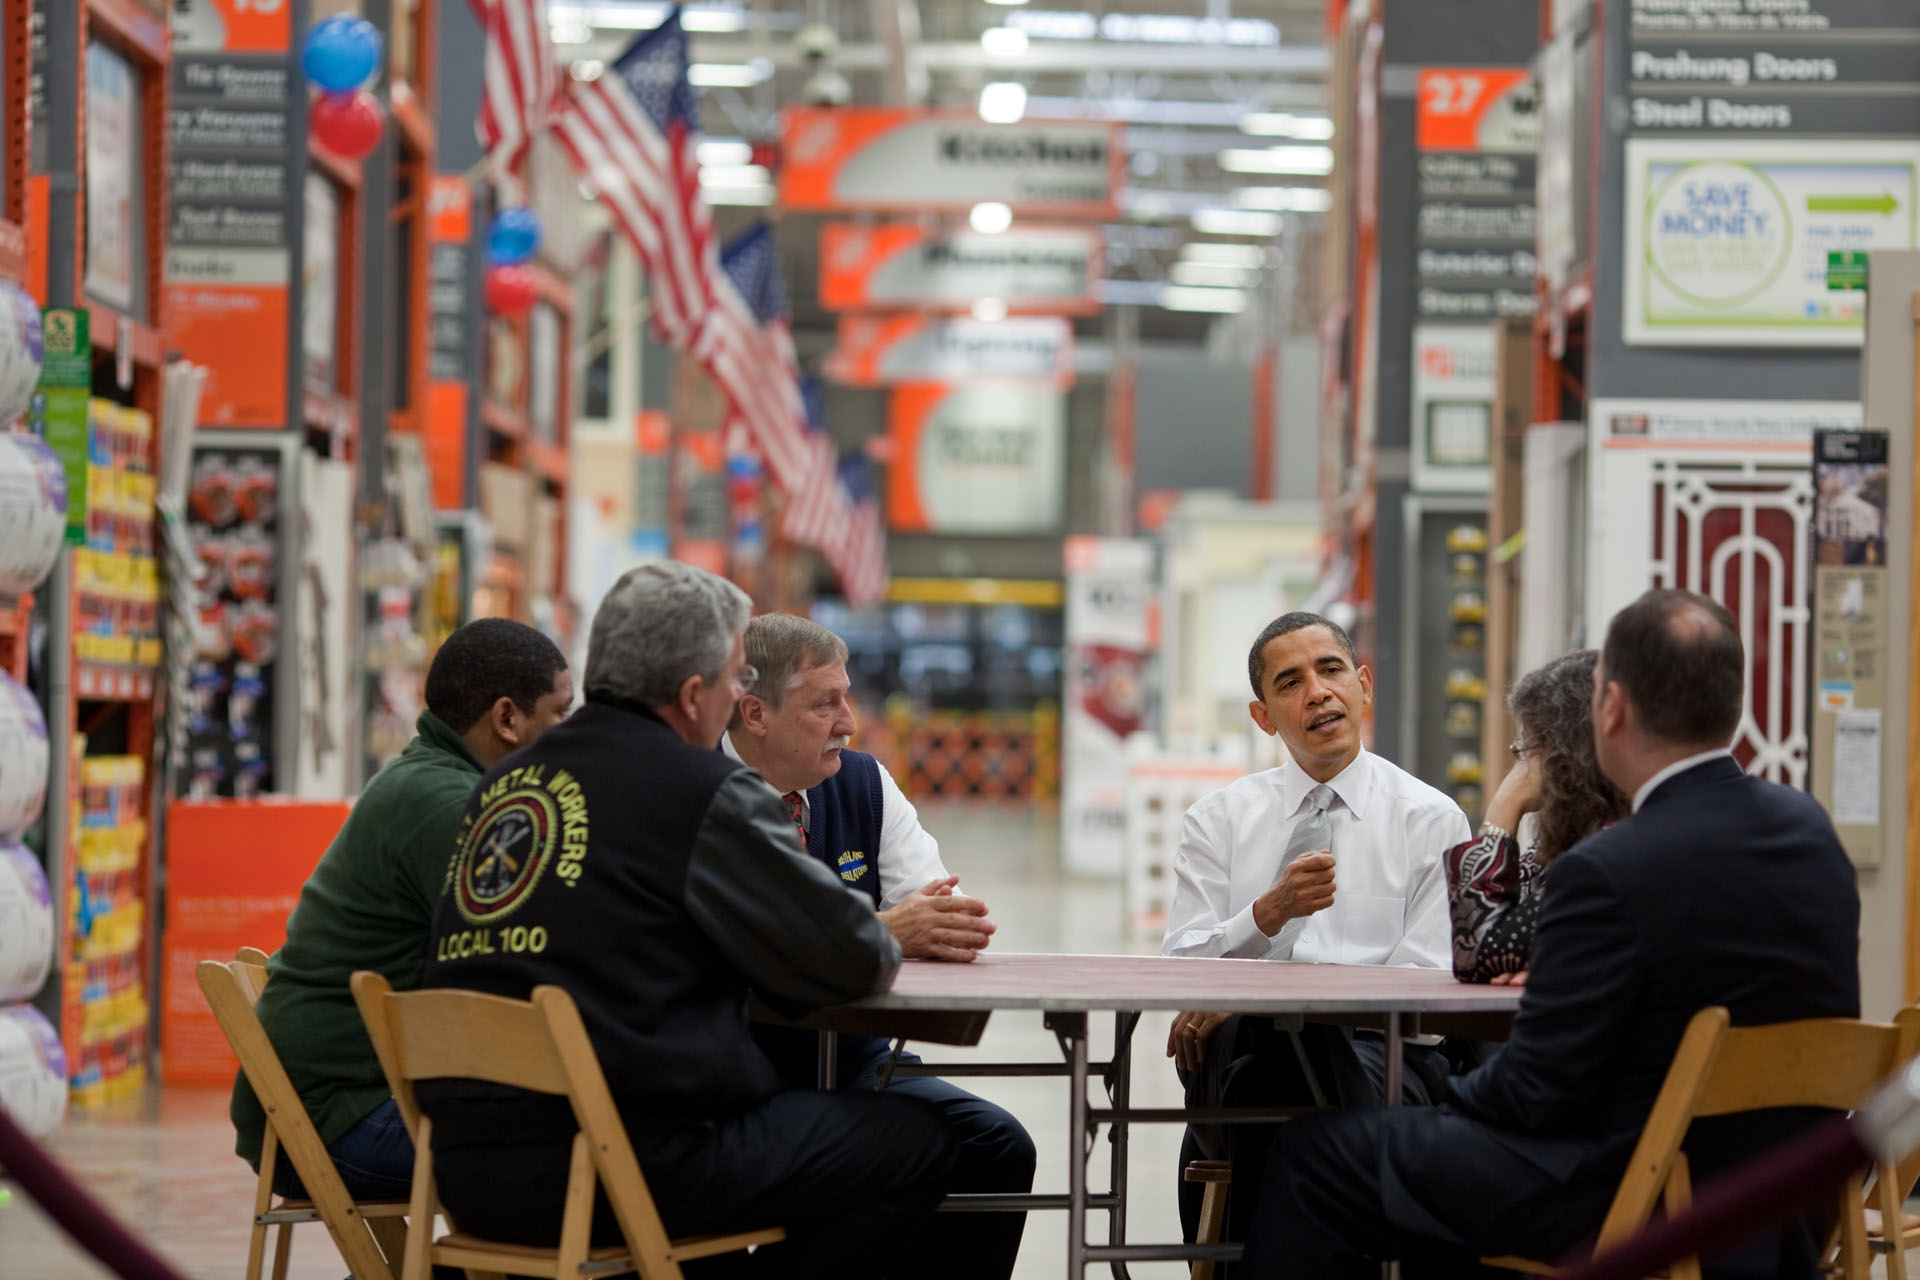 Meeting on Retrofitting at Home Depot